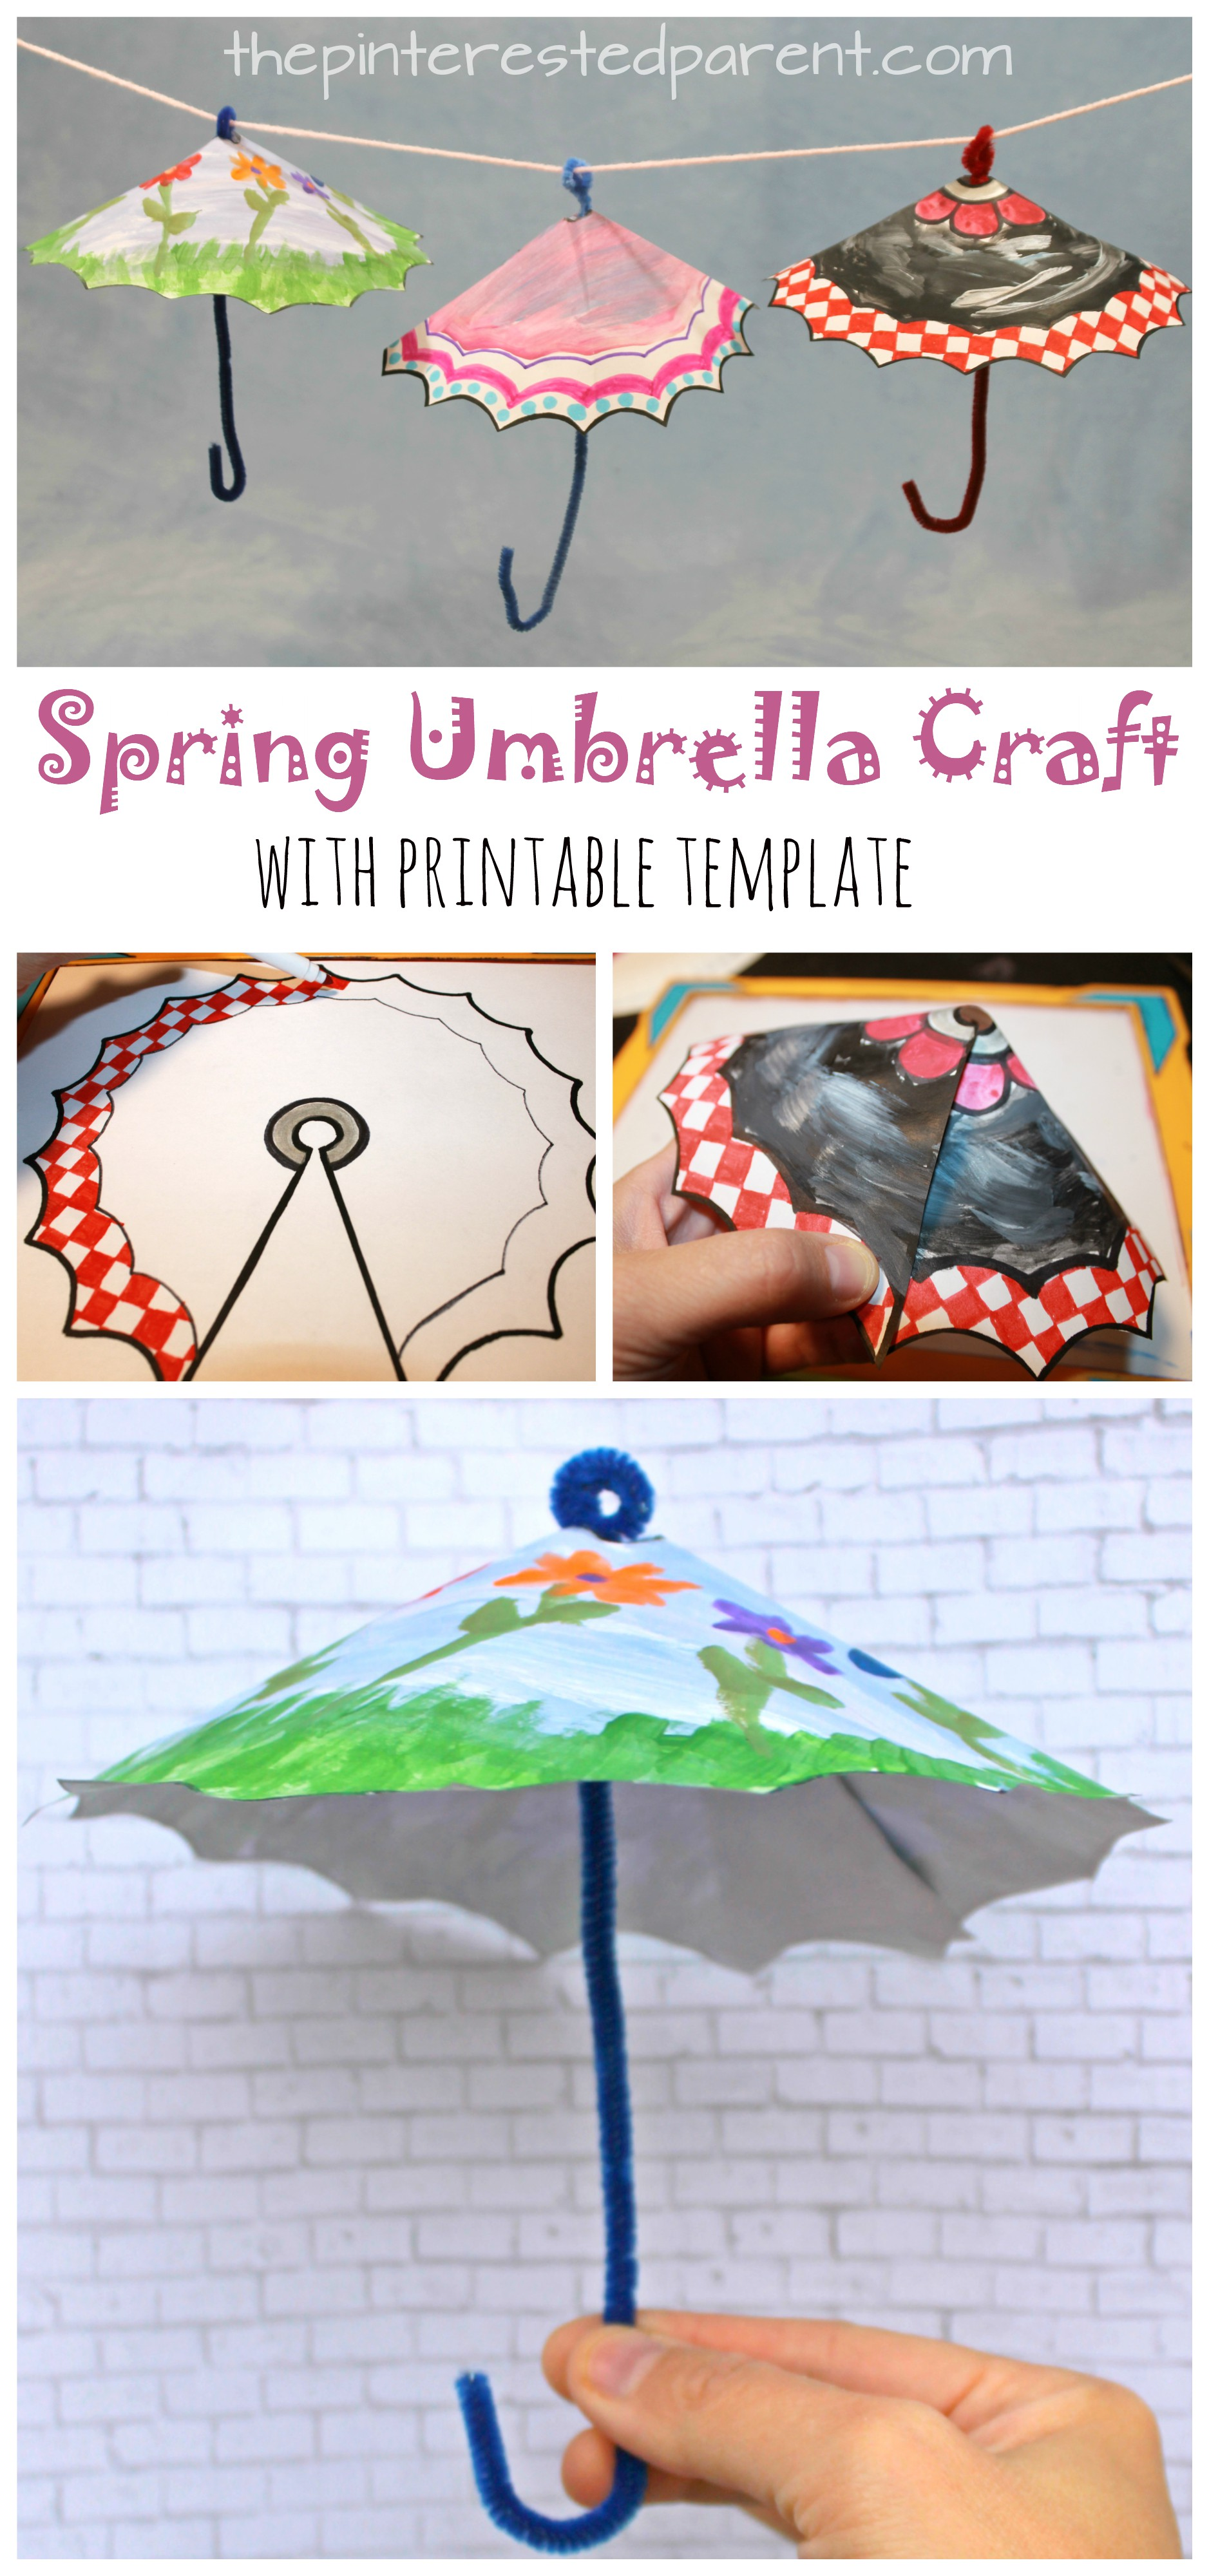 photograph relating to Printable Umbrellas named Spring Umbrella Craft With Printable The Pinterested Dad or mum